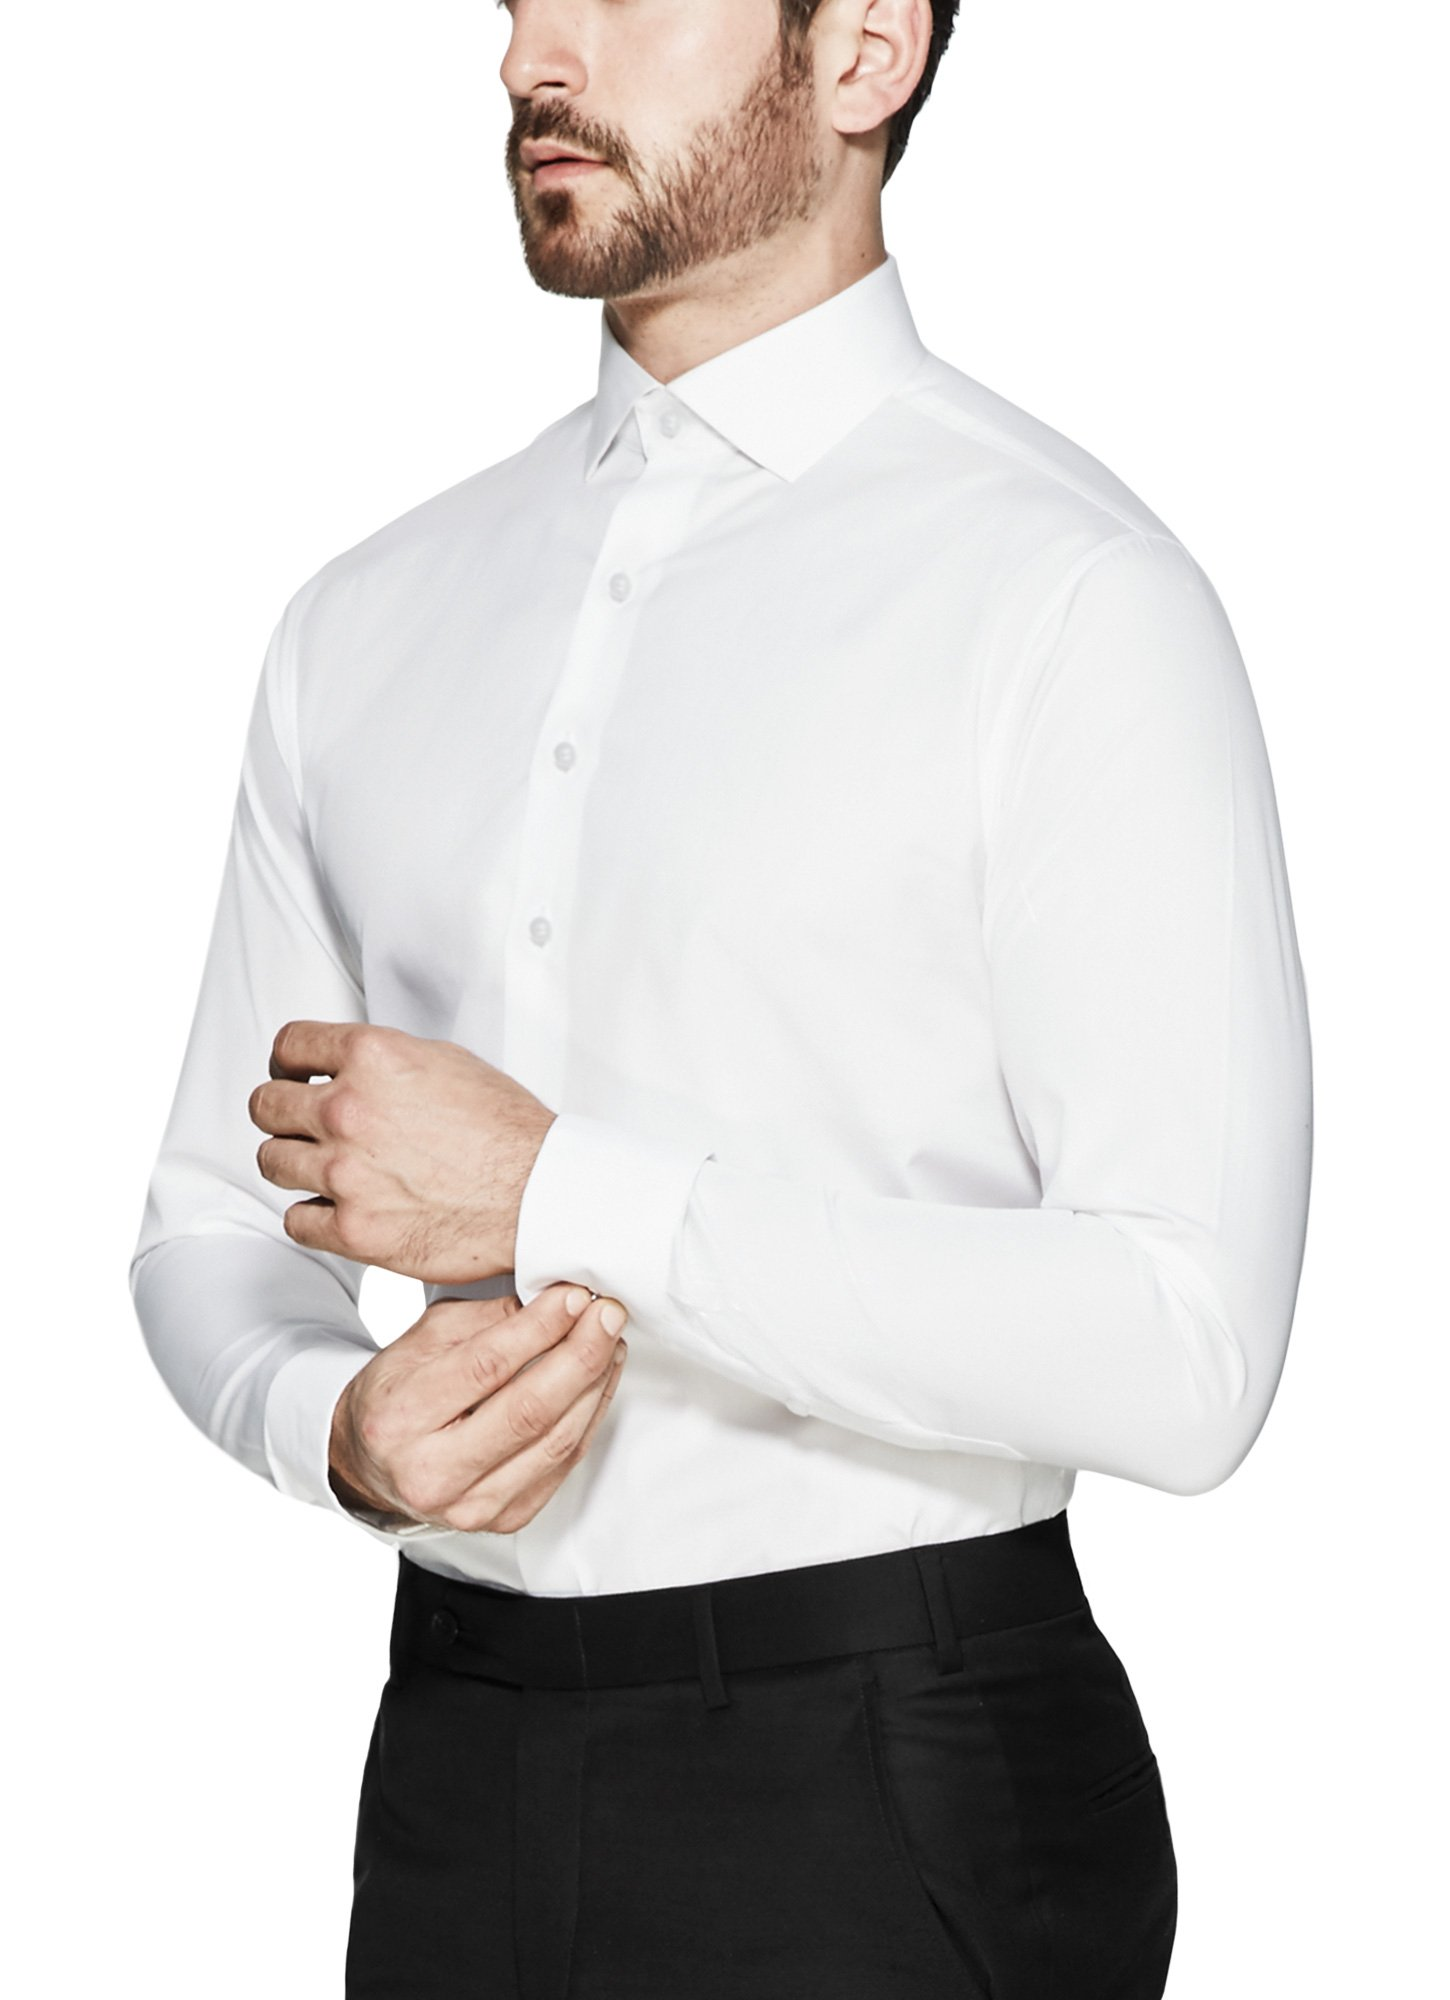 Vardama Men's White Tech Shirt With Stain & Sweat Proof Technology Vesey Tailored Fit (Large)